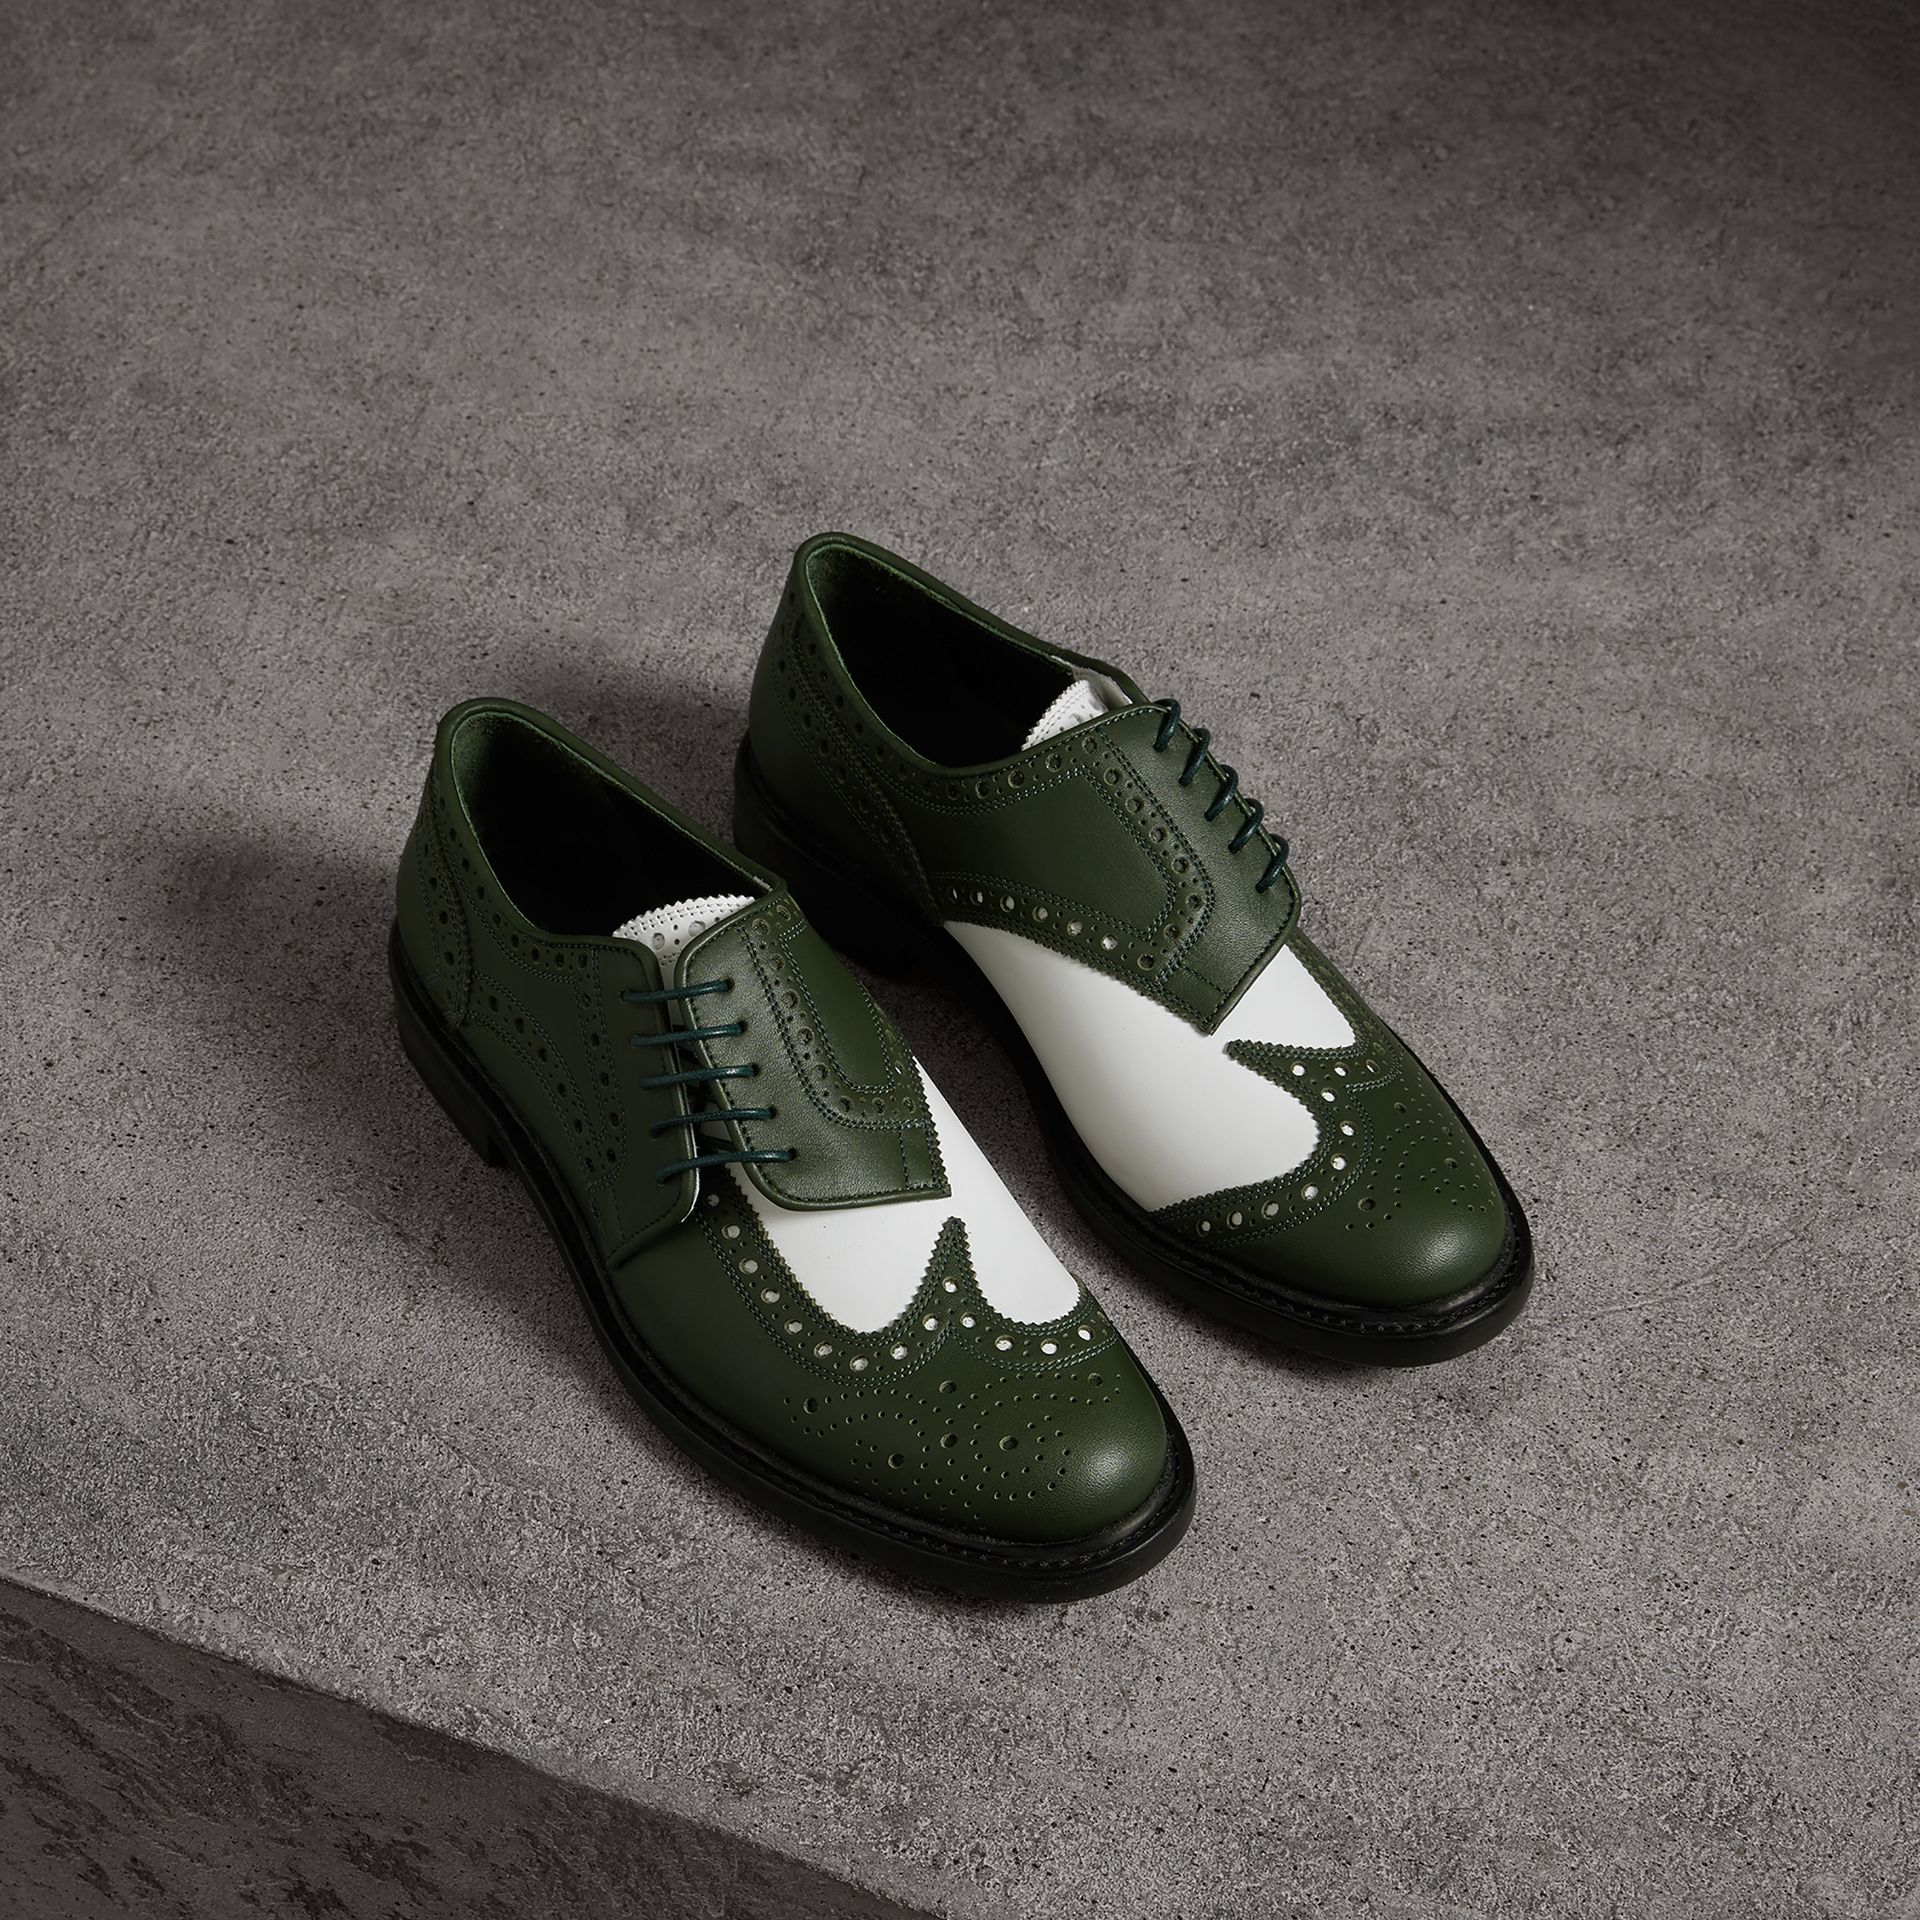 Two-tone Asymmetric Closure Leather Brogues in Dark Green - Women | Burberry - gallery image 0